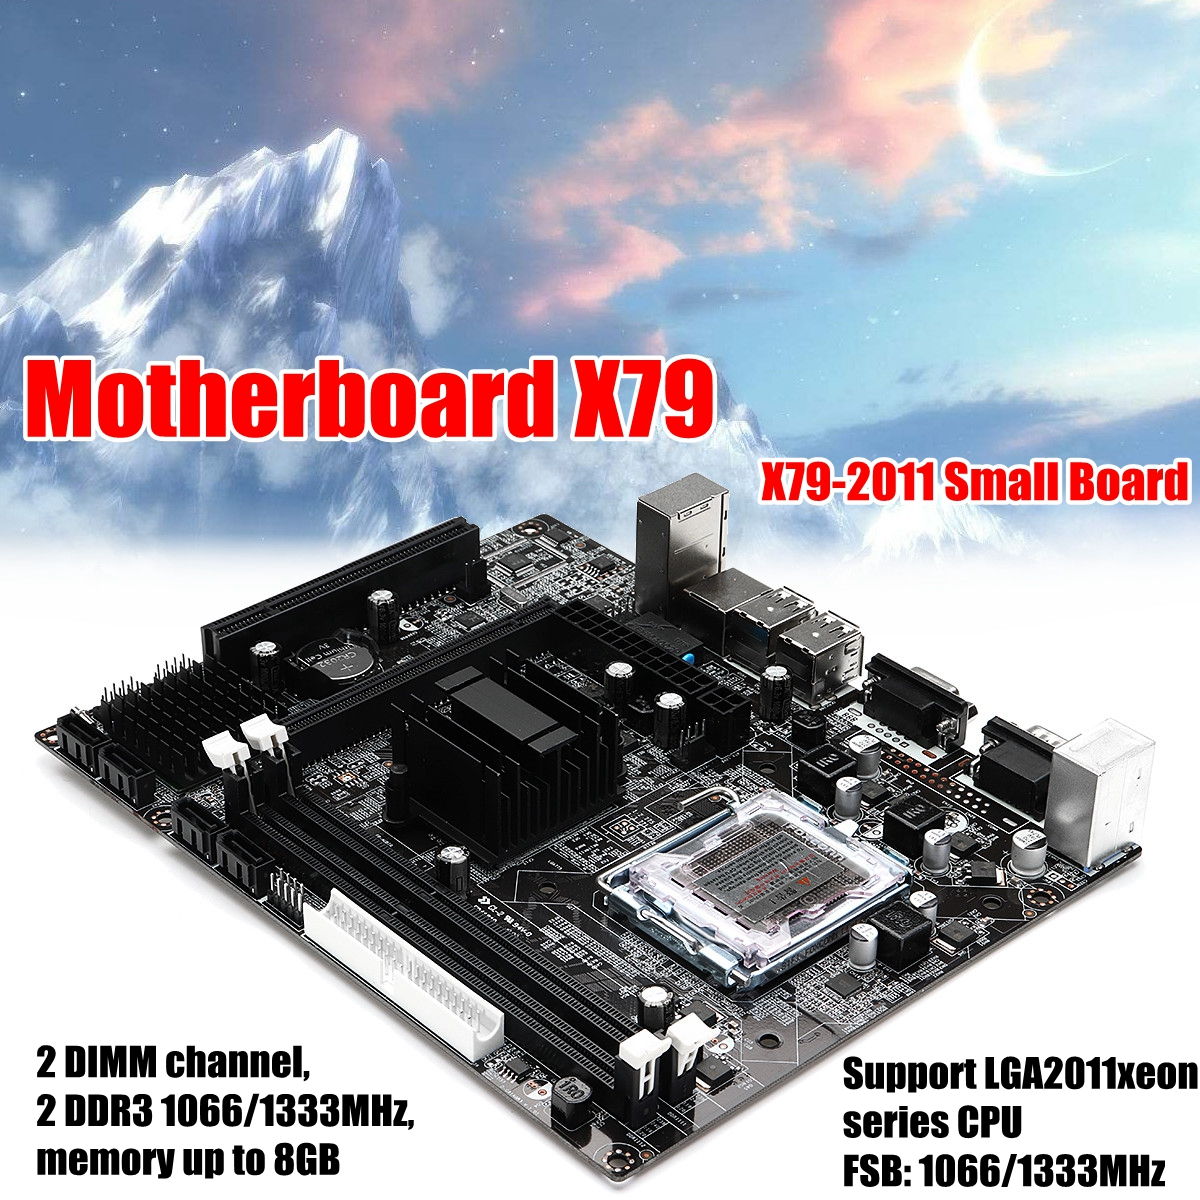 X79-2011 Small Board Mainboard Motherboard For LGA2011 Xeon Series CPU DDR3 1066/1333 For Intel X79